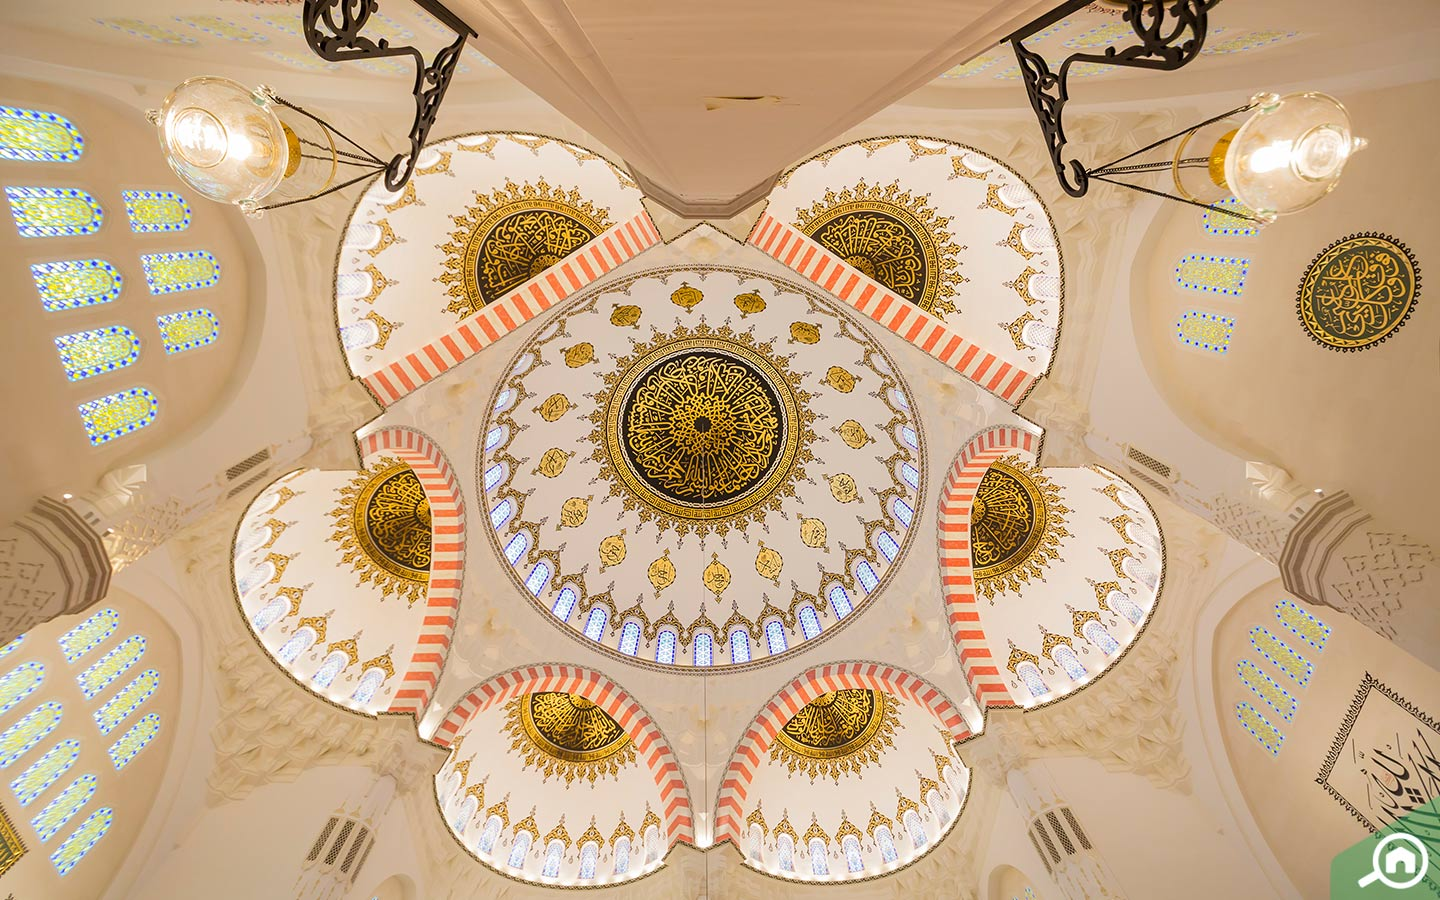 Domed ceiling at new Sharjah Mosque